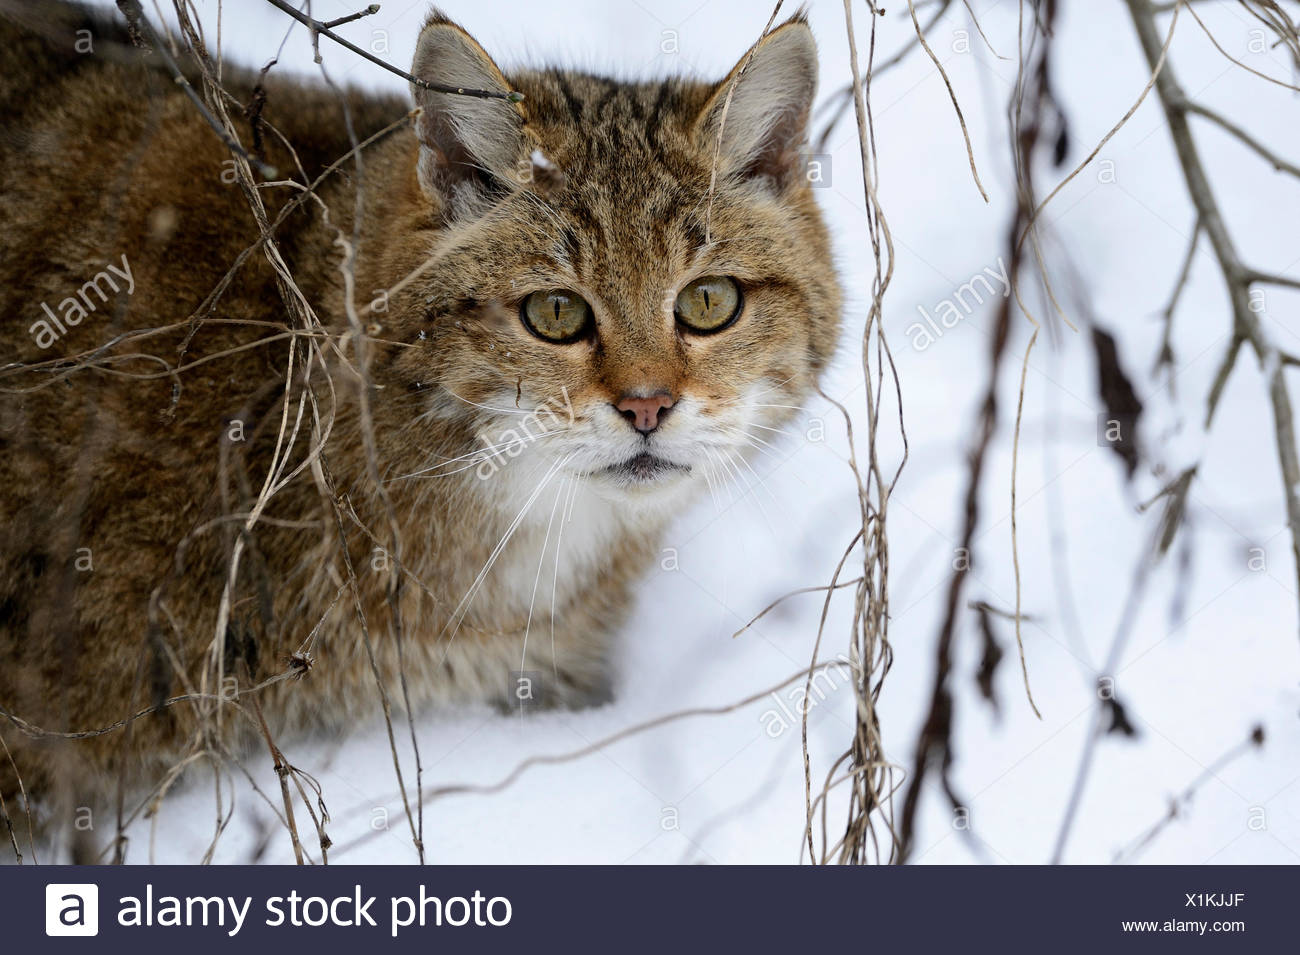 Prédateurs Les prédateurs les prédateurs sauvages jeu petits chats chats cat chat sauvage Felis silvestris wildcats neige hiver animal animaux, Photo Stock